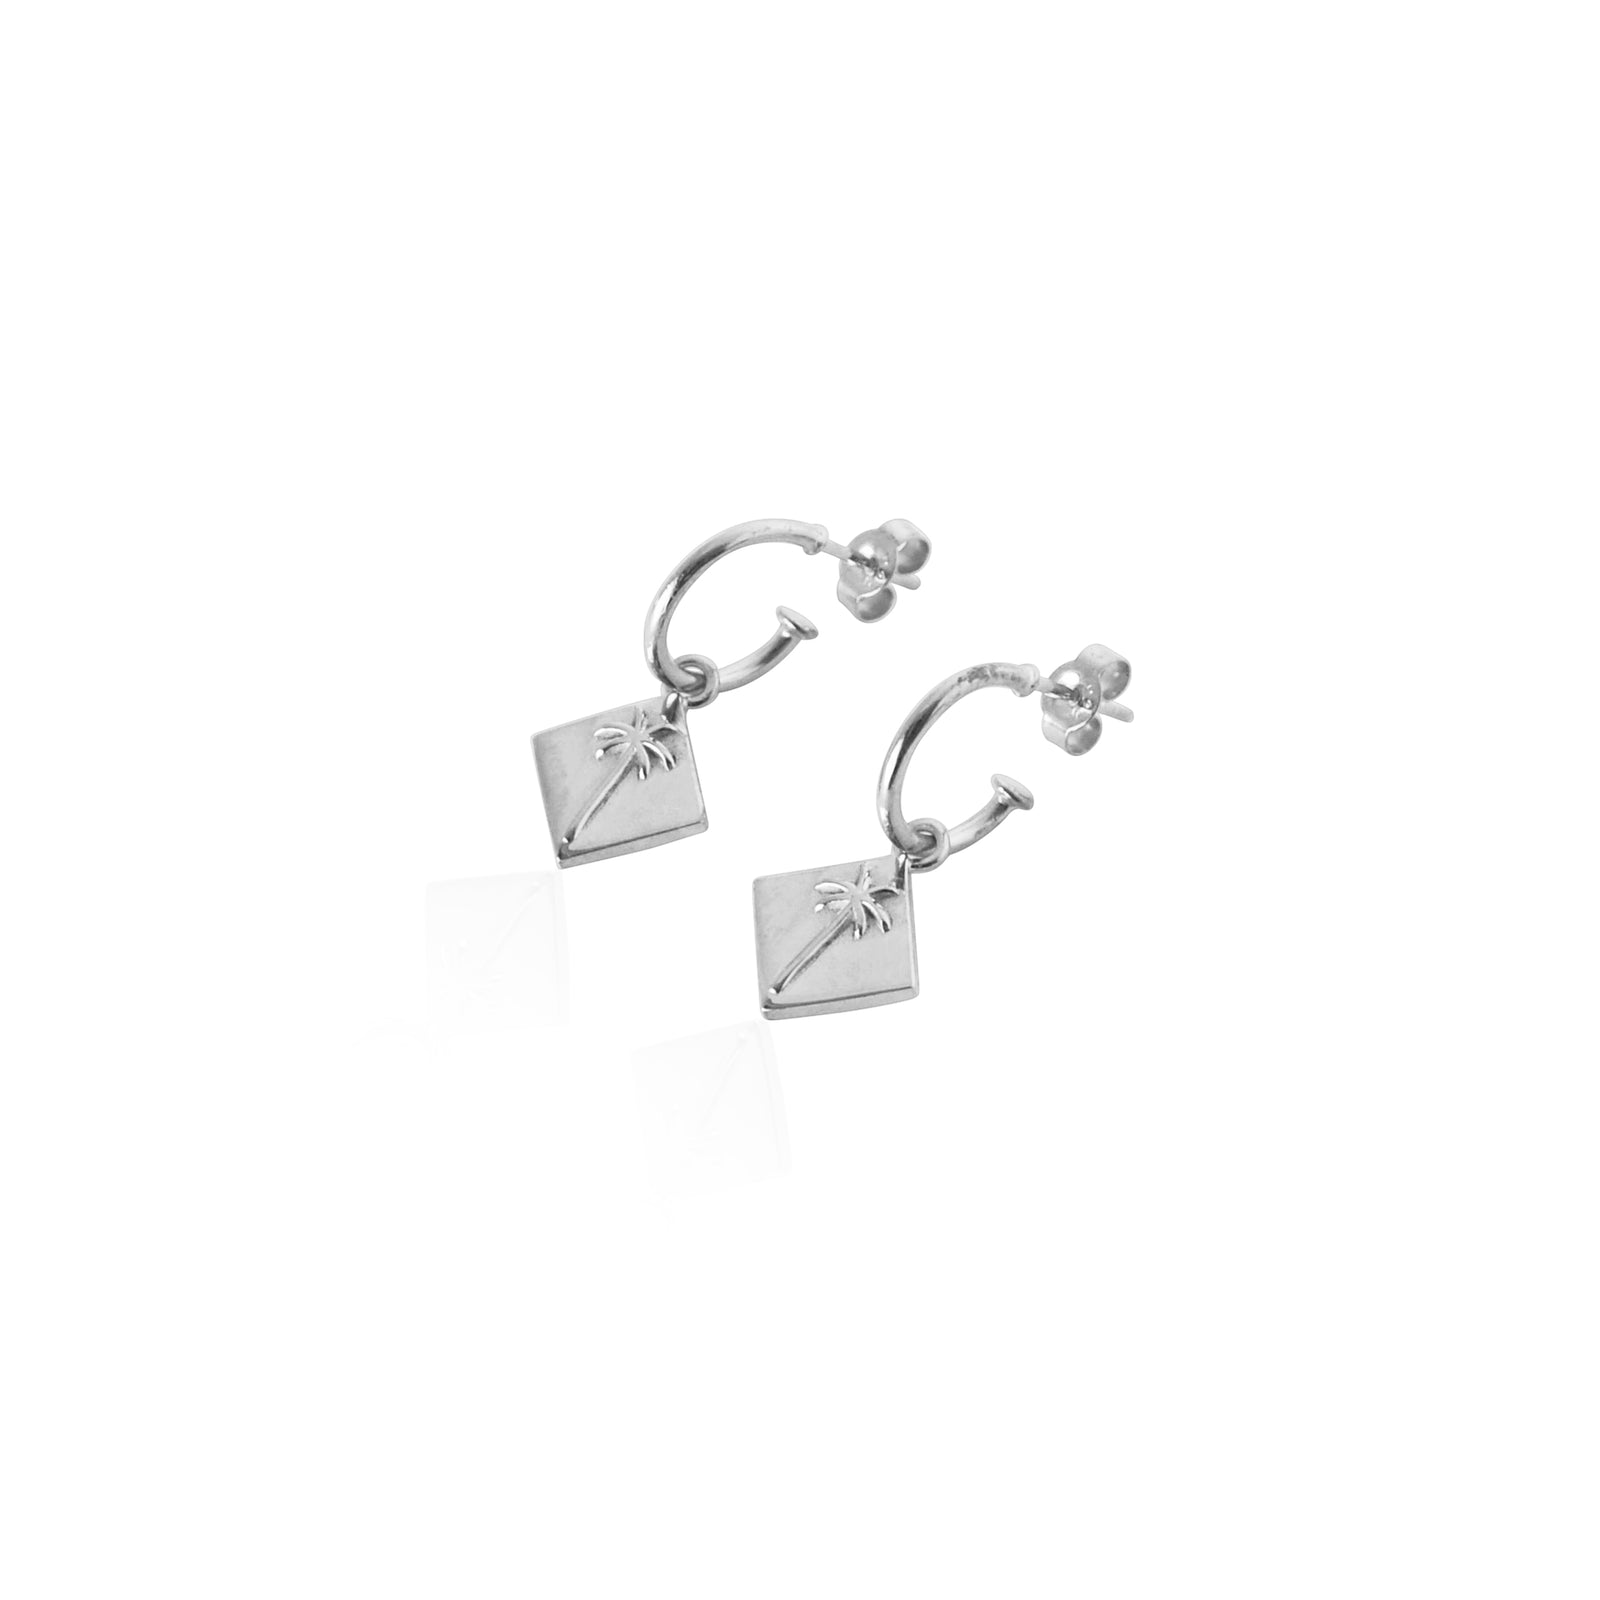 138a913c09 Pacific Palm Gold Hoop Earrings Coconut & Bliss Recycled Sterling Silver